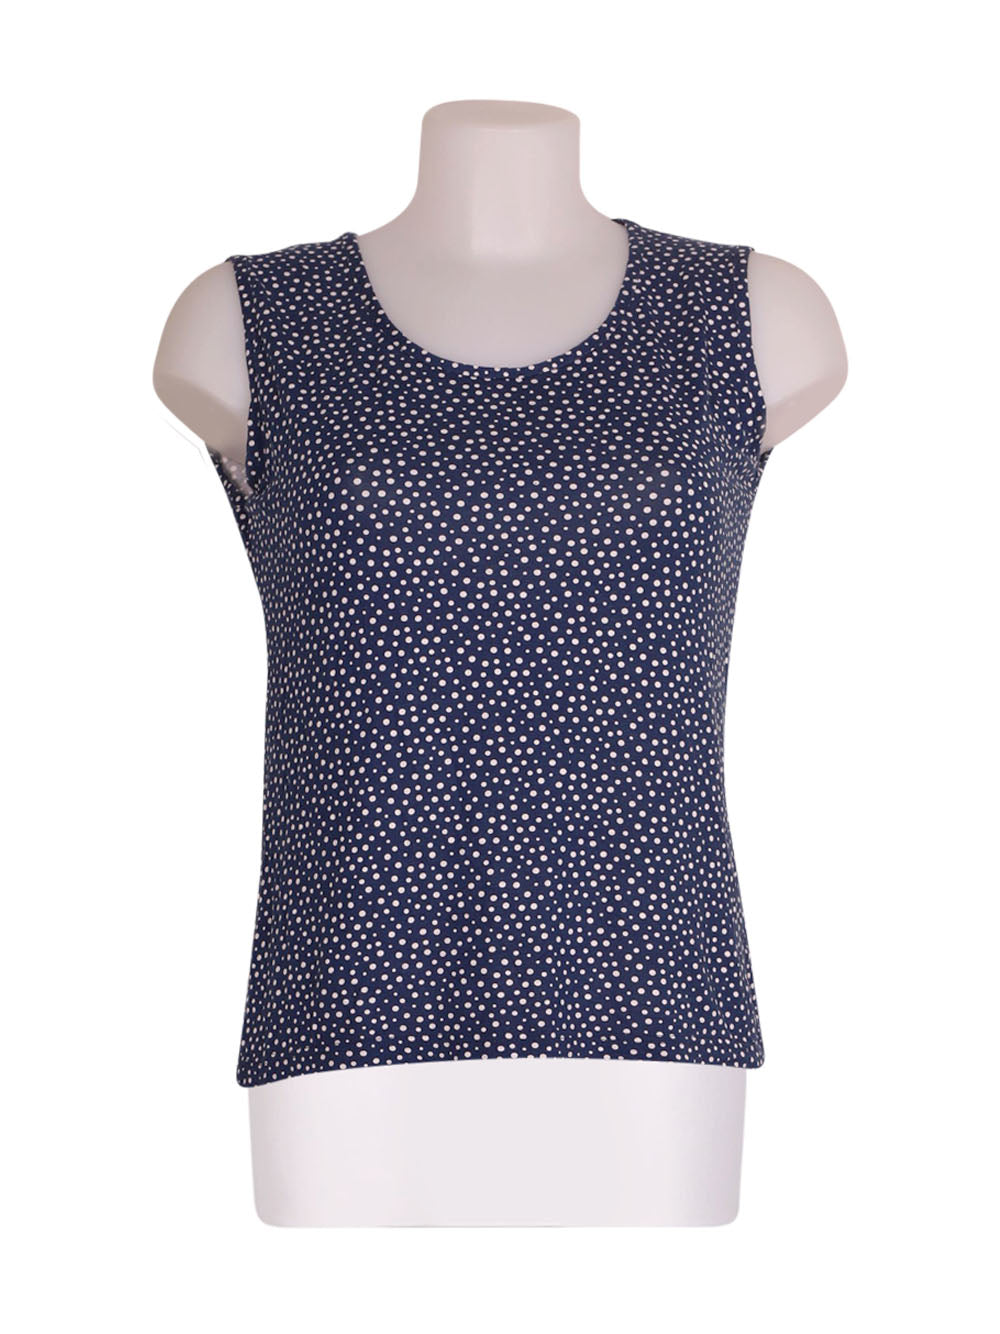 Front photo of Preloved gaia b Blue Woman's sleeveless top - size 8/S